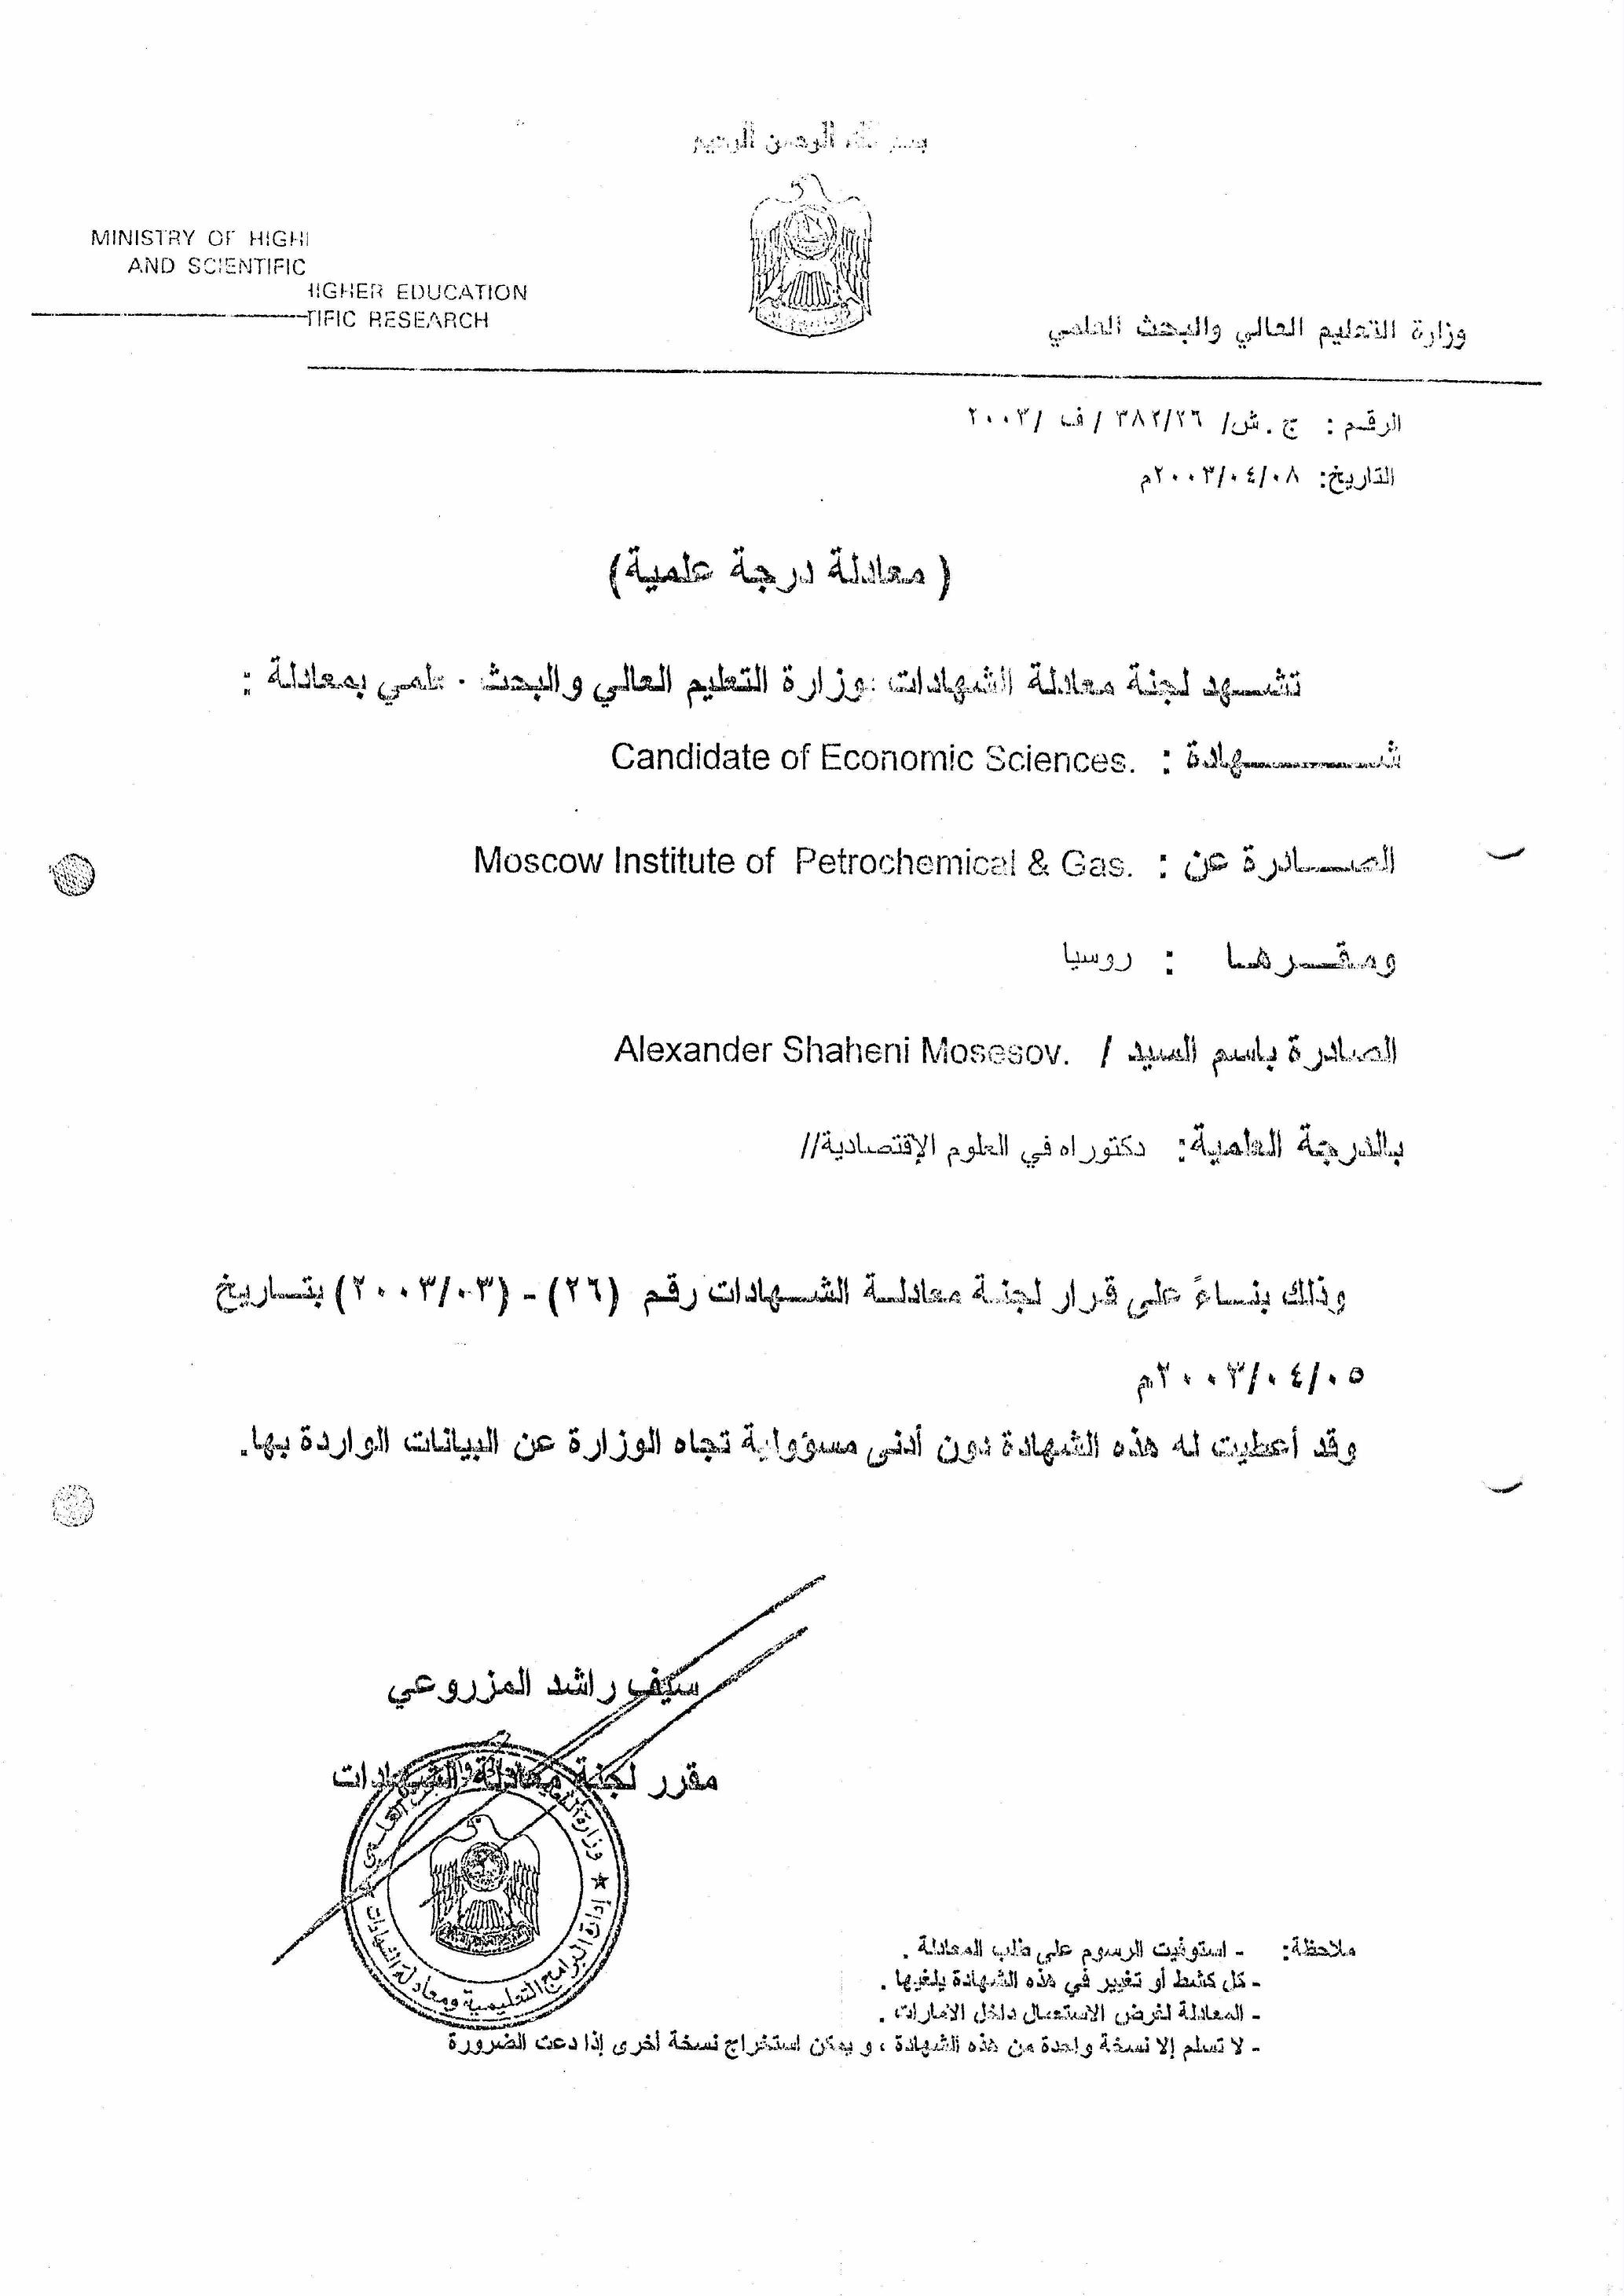 UAE accreditation